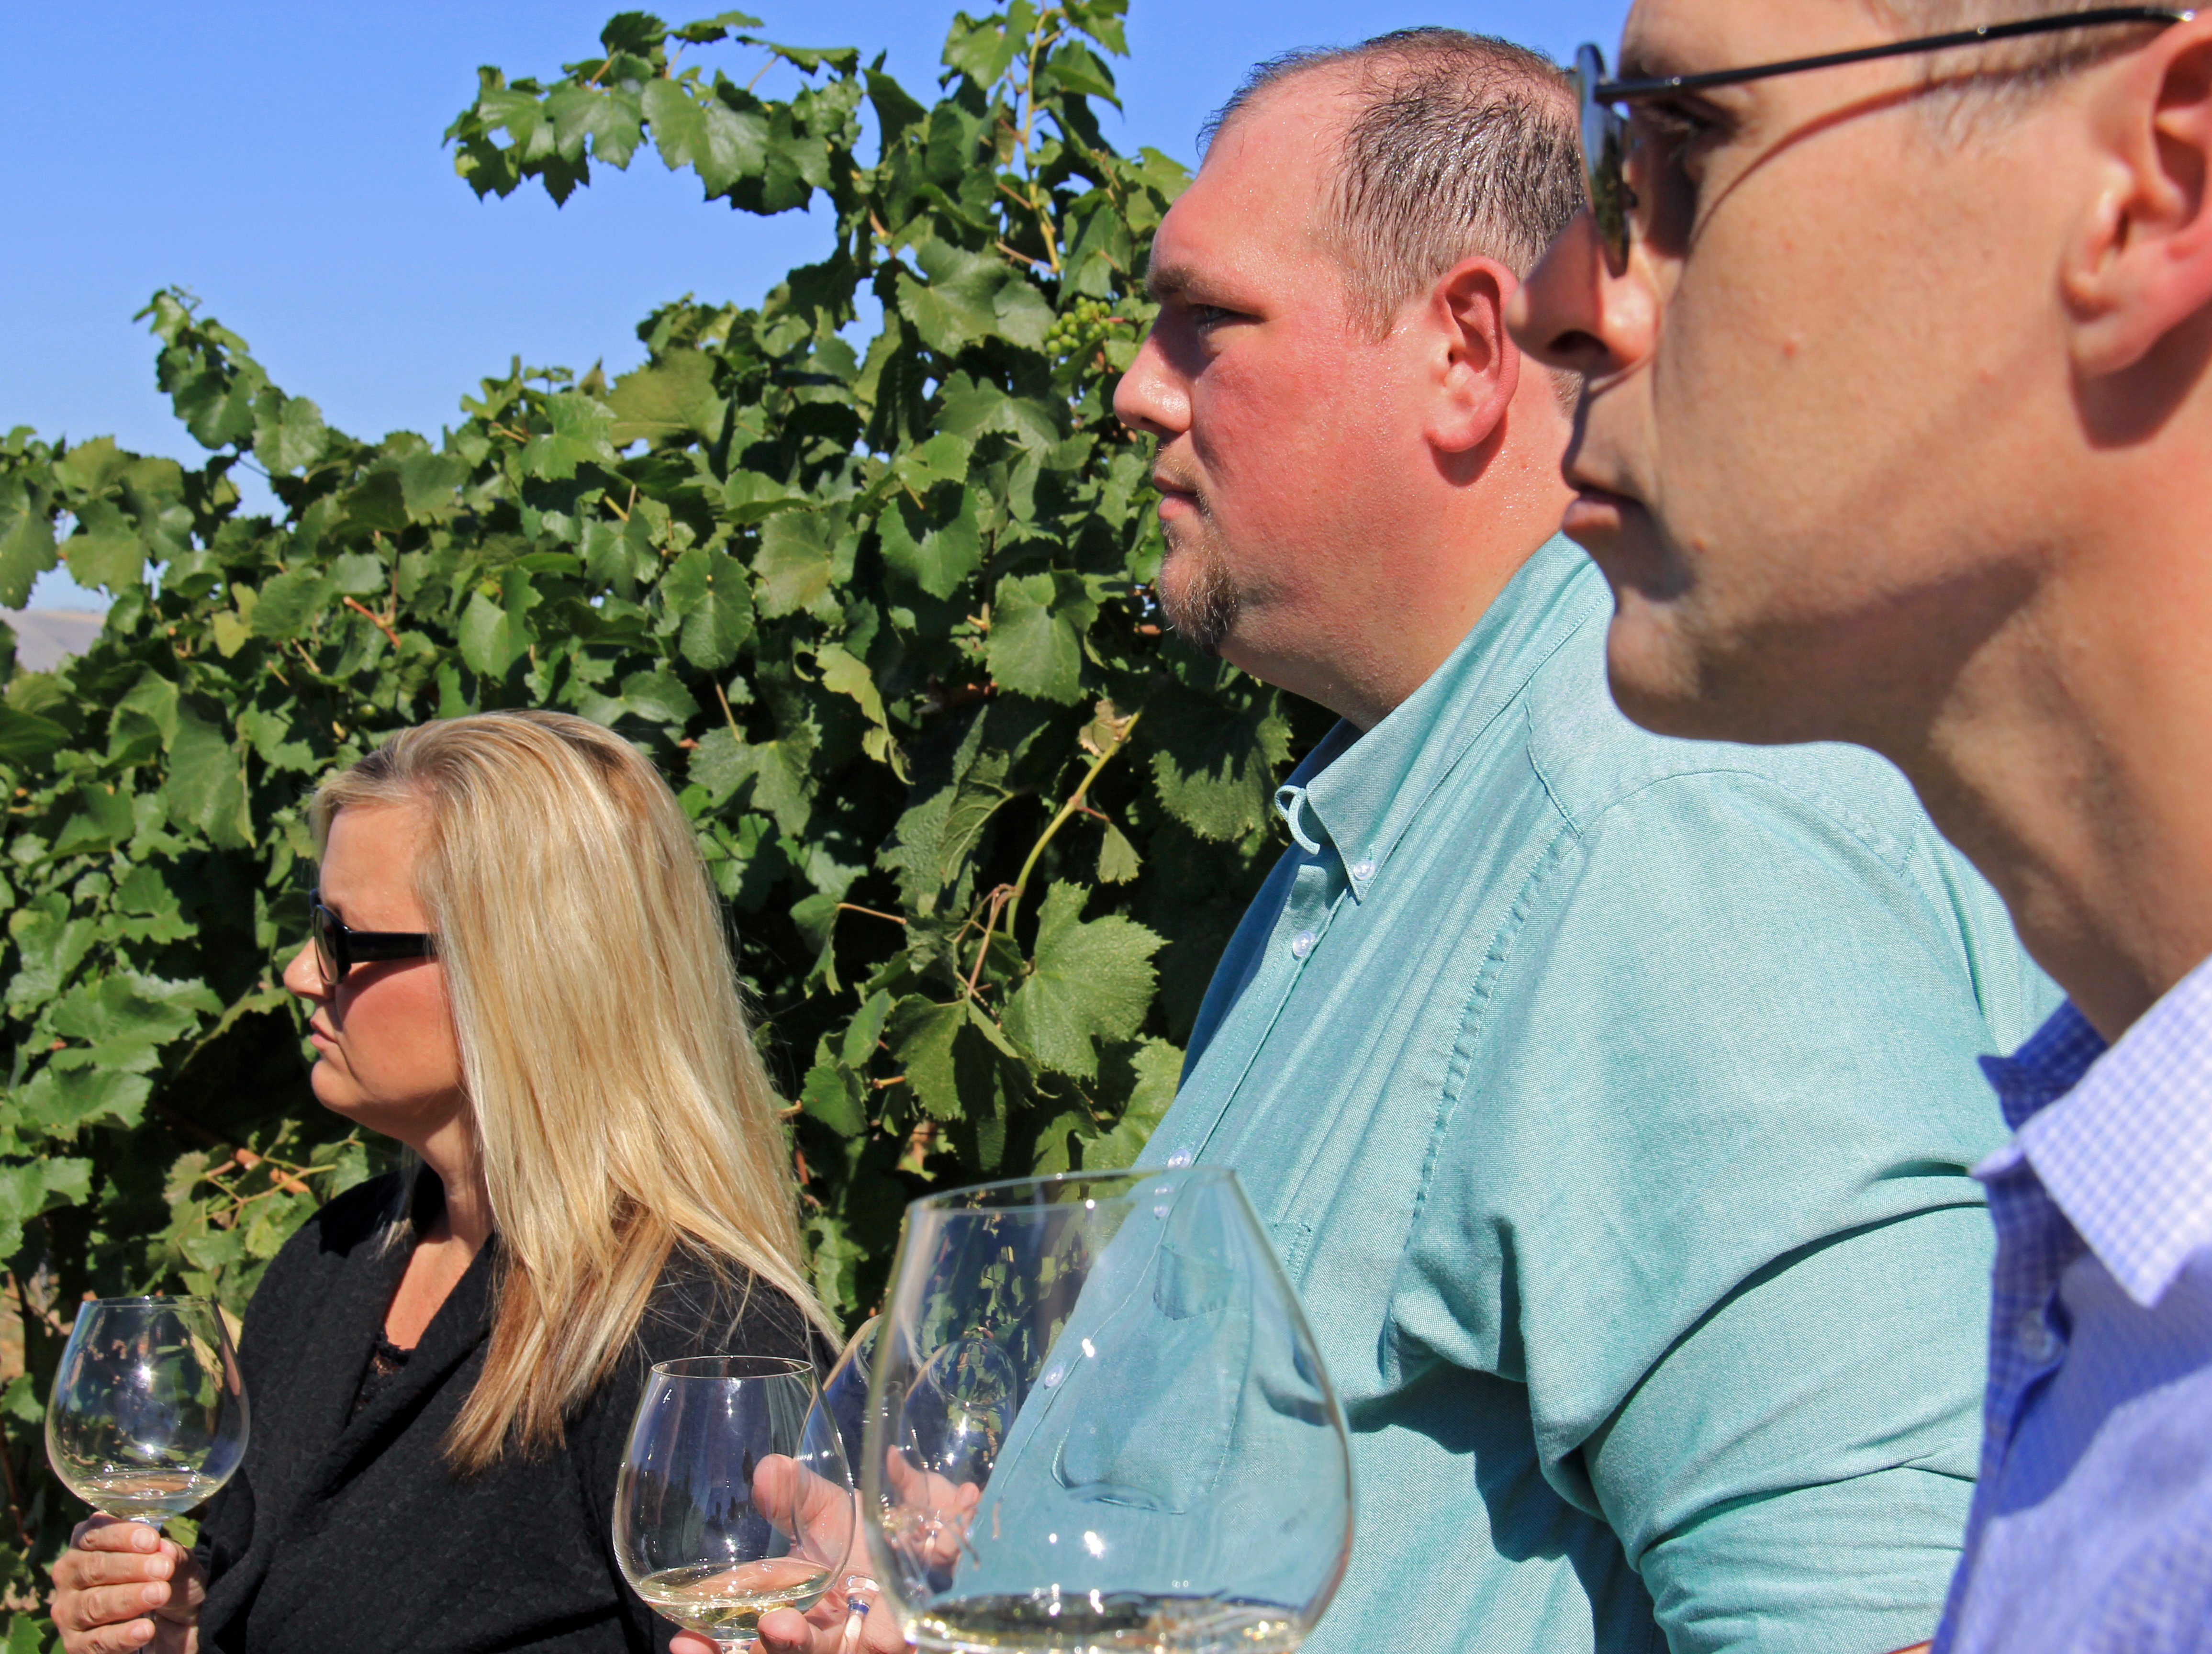 Guests listening to the guide while on the Twisted Vine Wine Tour